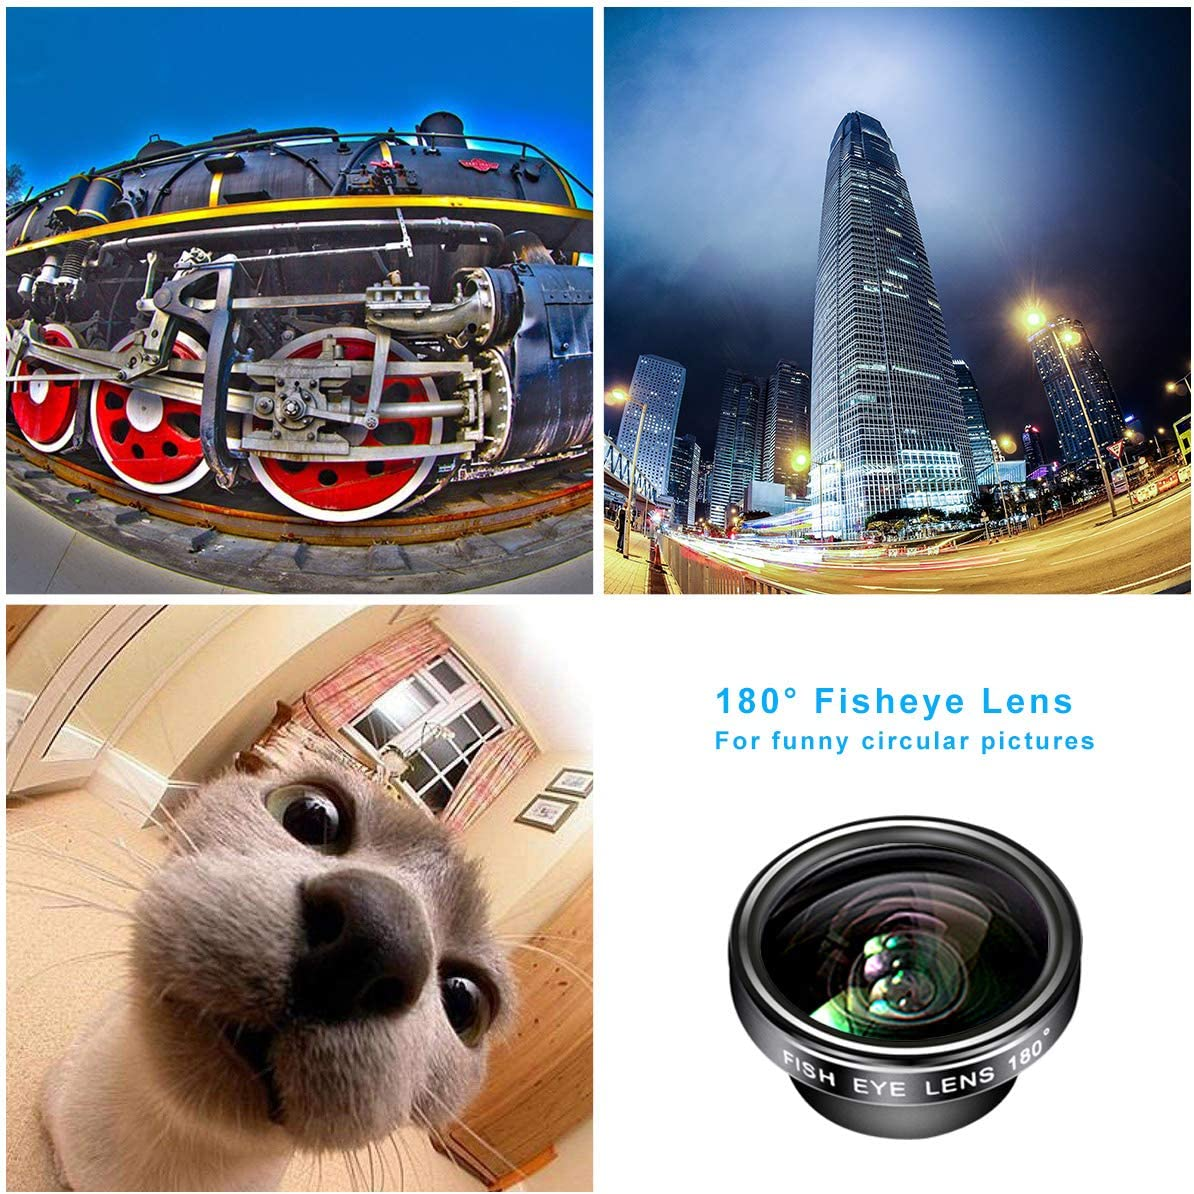 Samsung S9//8//Note 9//8//S6 0.63X Wide and 15X Macro Lens for iPhone X//XR//8//7//6S 0.4X Super Wide /& 180/° Fisheye Lens AFAITH 5-in-1 Phone Lens kit-9X Zoom Telephoto Lens LG Phone Camera Lens